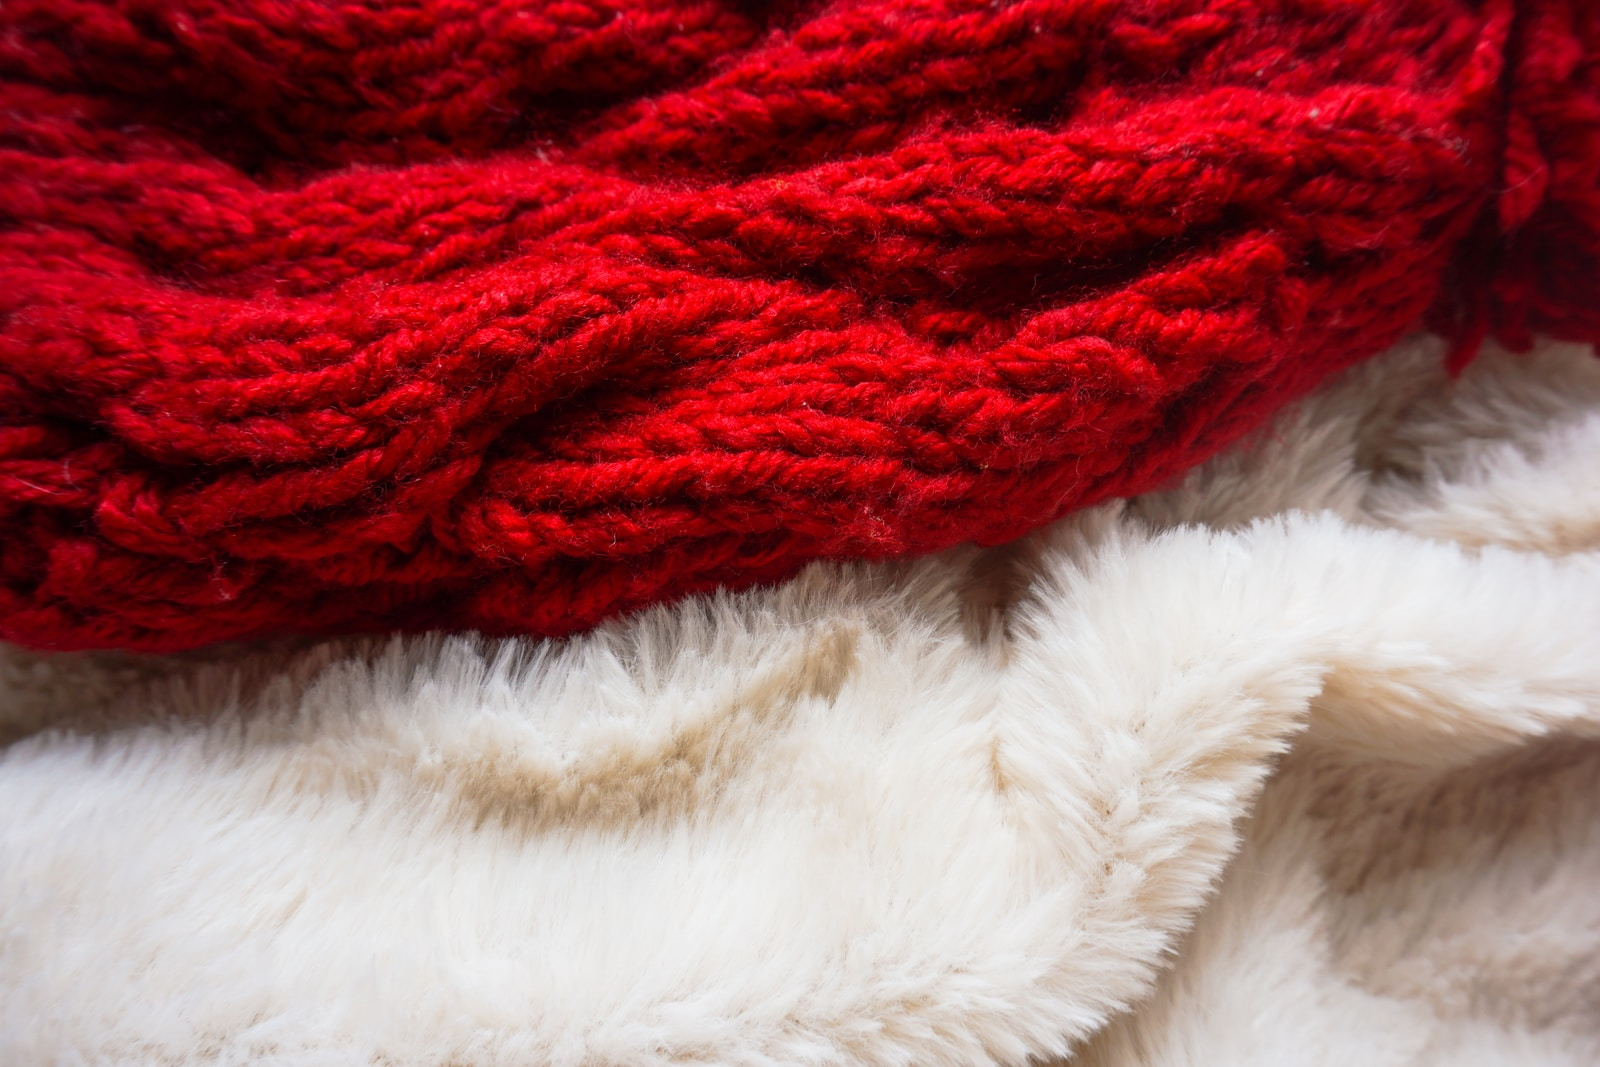 red and white fur textile